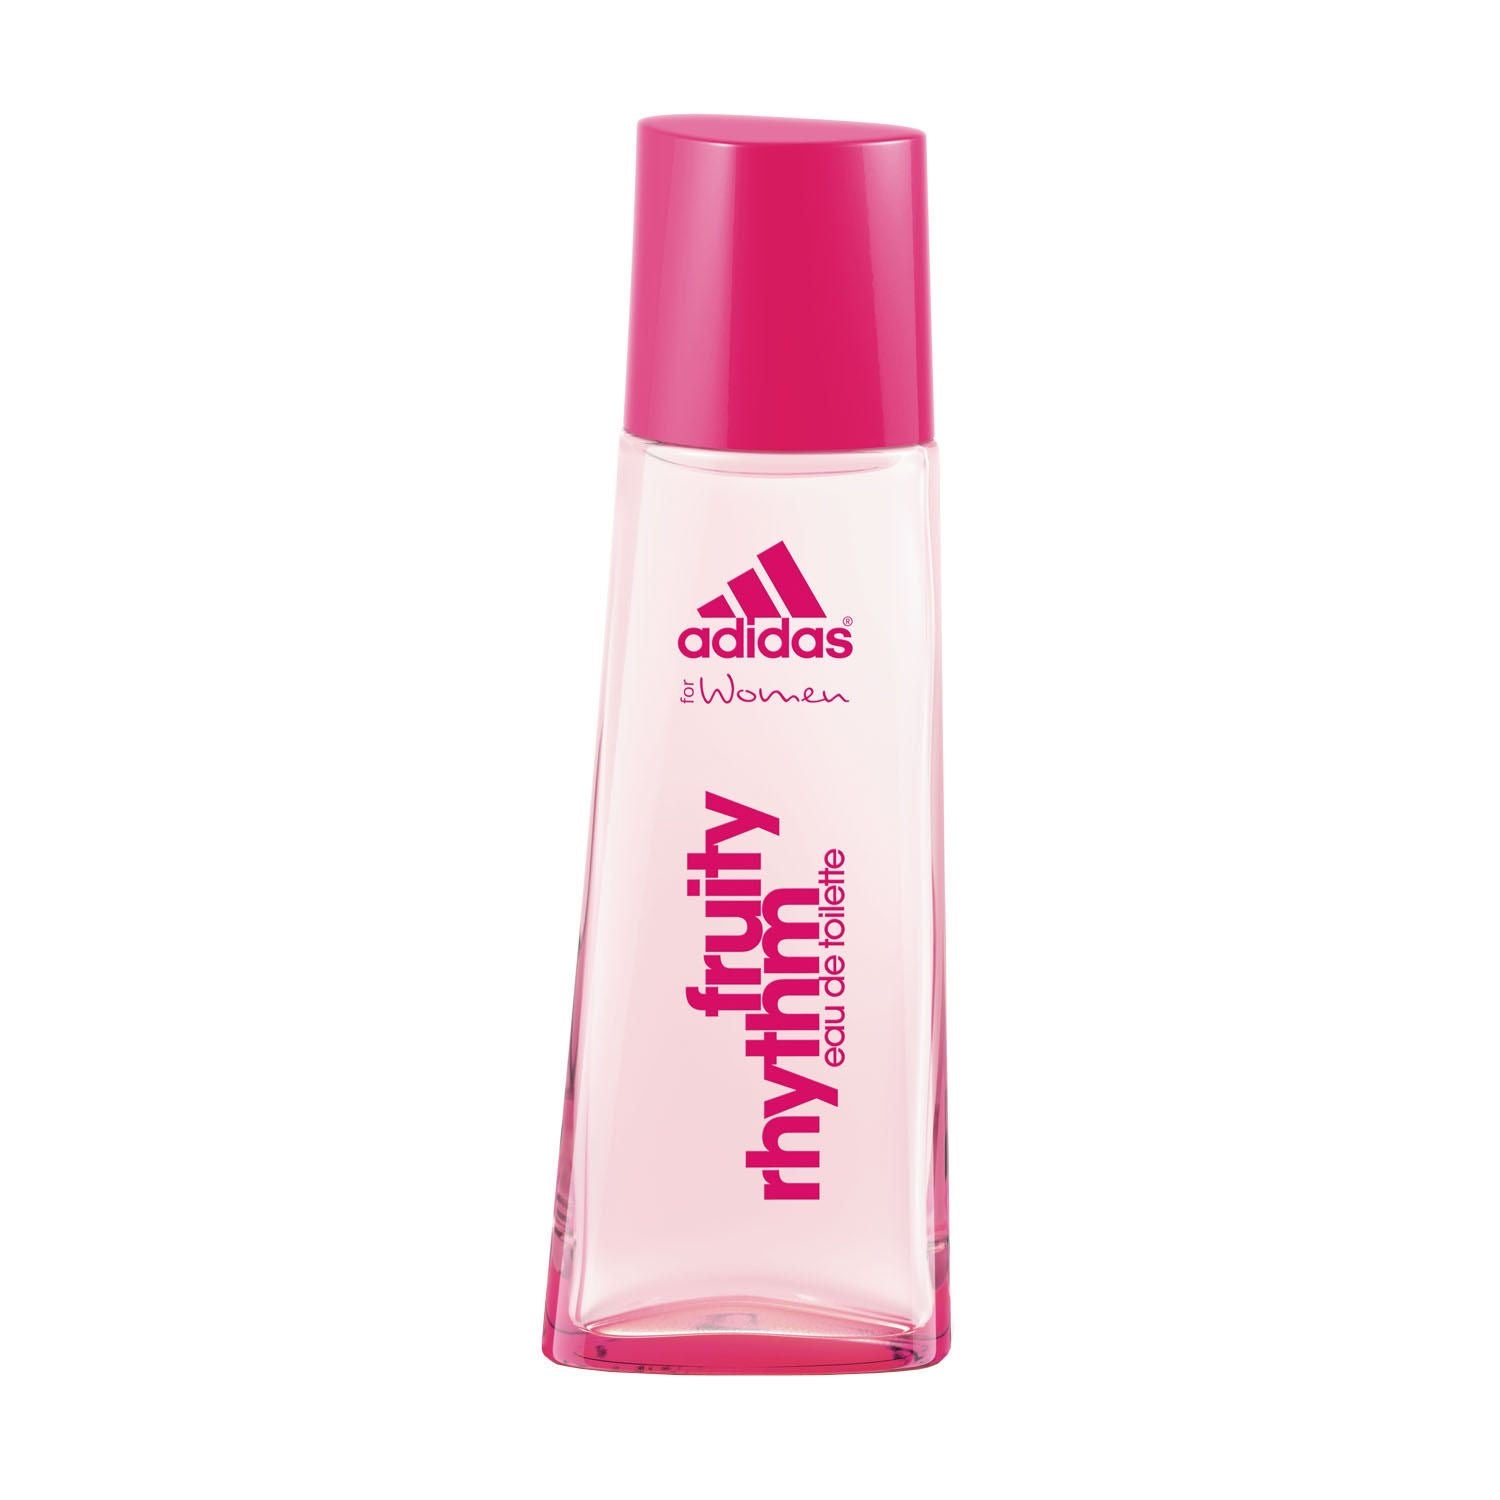 Adidas Fruity Rhythm EDT 75ml for Women UNBOXED